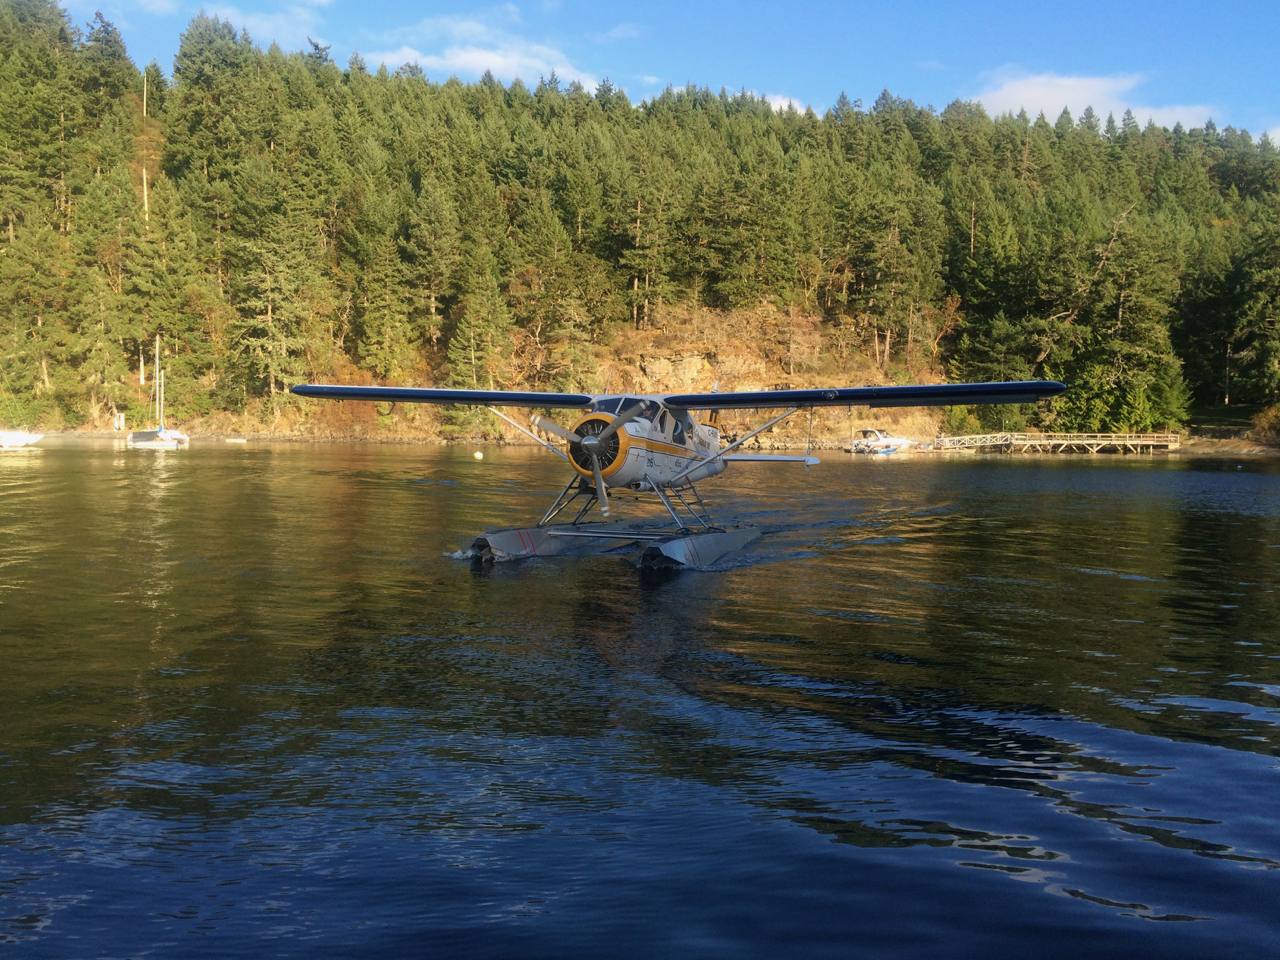 Float plane in Cowichan Bay